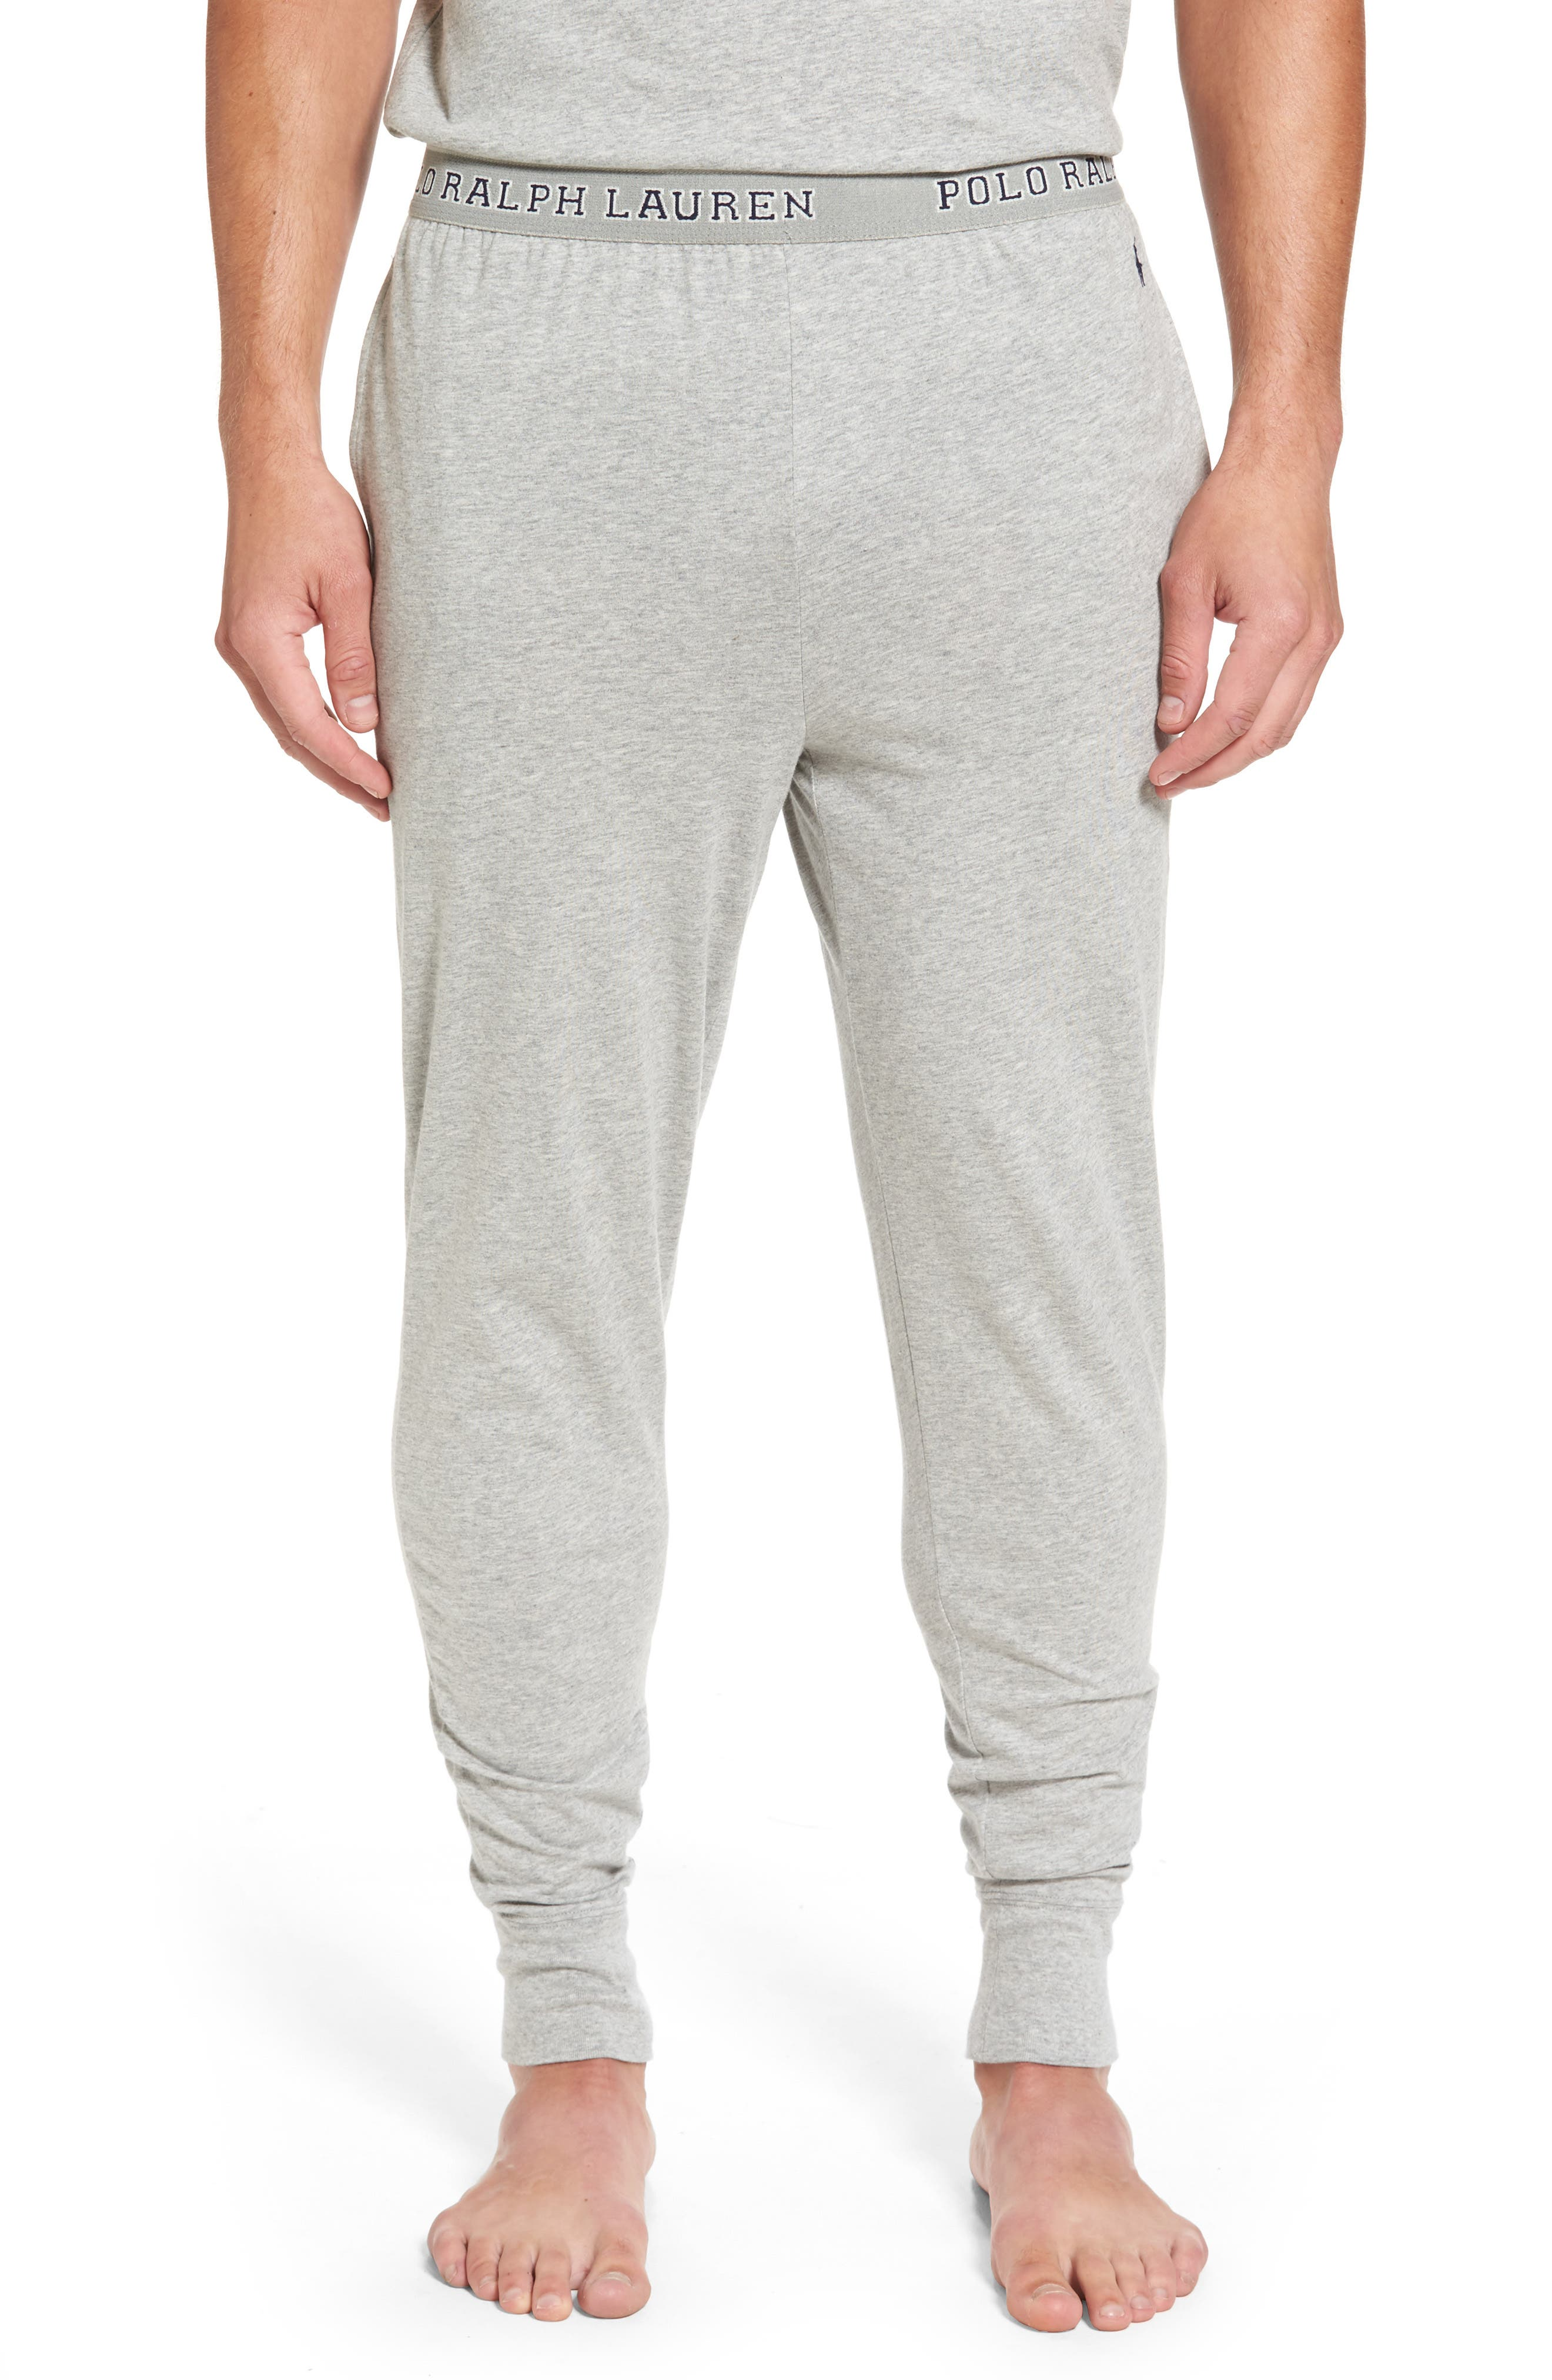 Polo Ralph Lauren Cotton Jogger Lounge Pants